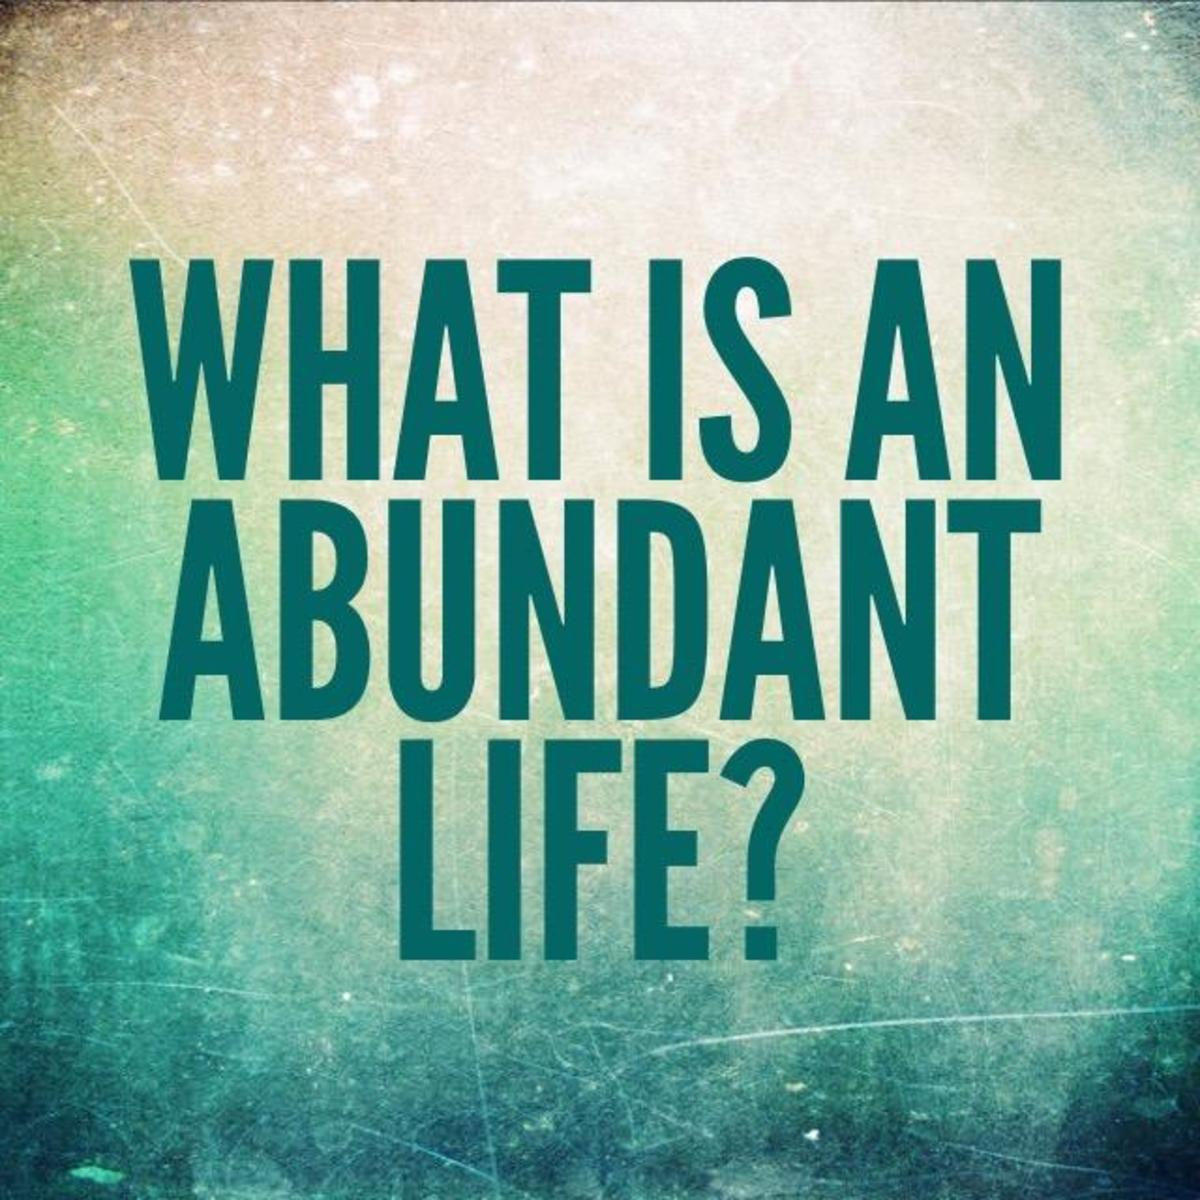 What Jesus Meant When He Promised An Abundant Life in John 10:10